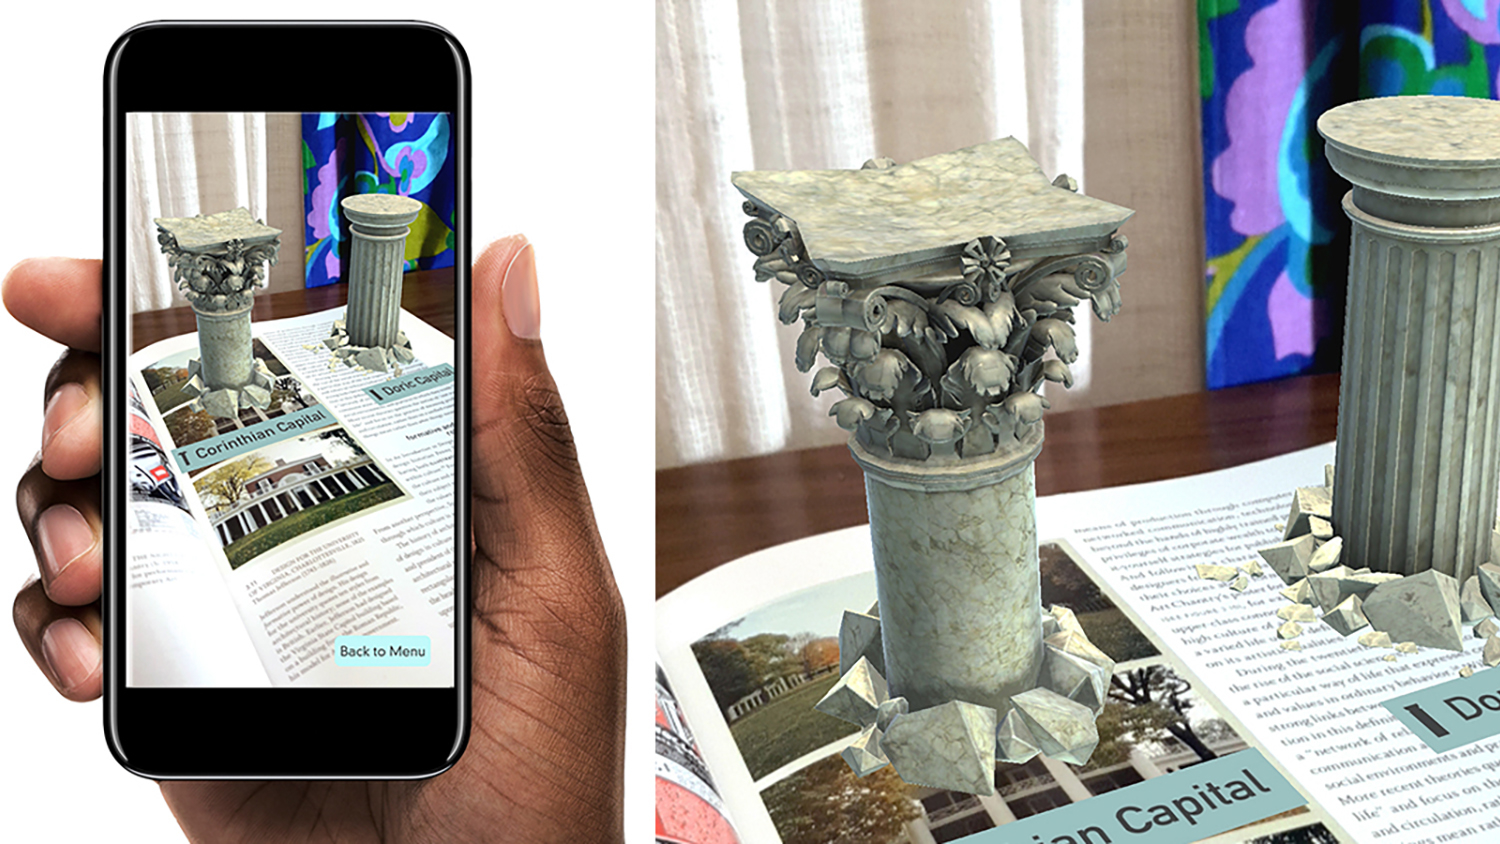 Augmented Reality Brings New Life to Graphic Design Theory Textbook